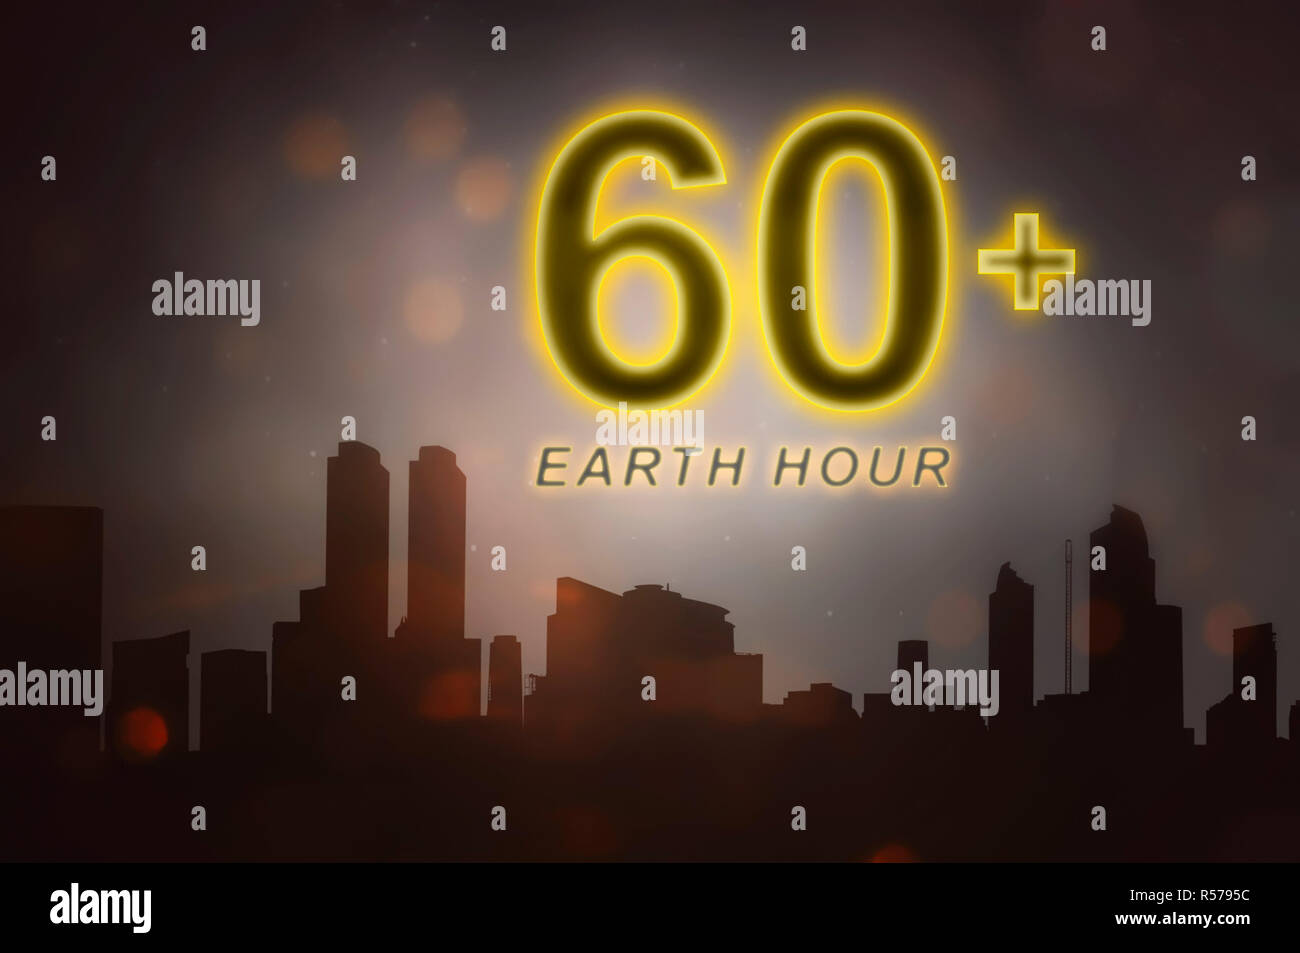 Earth hour message to turn off electrical equipment in 60